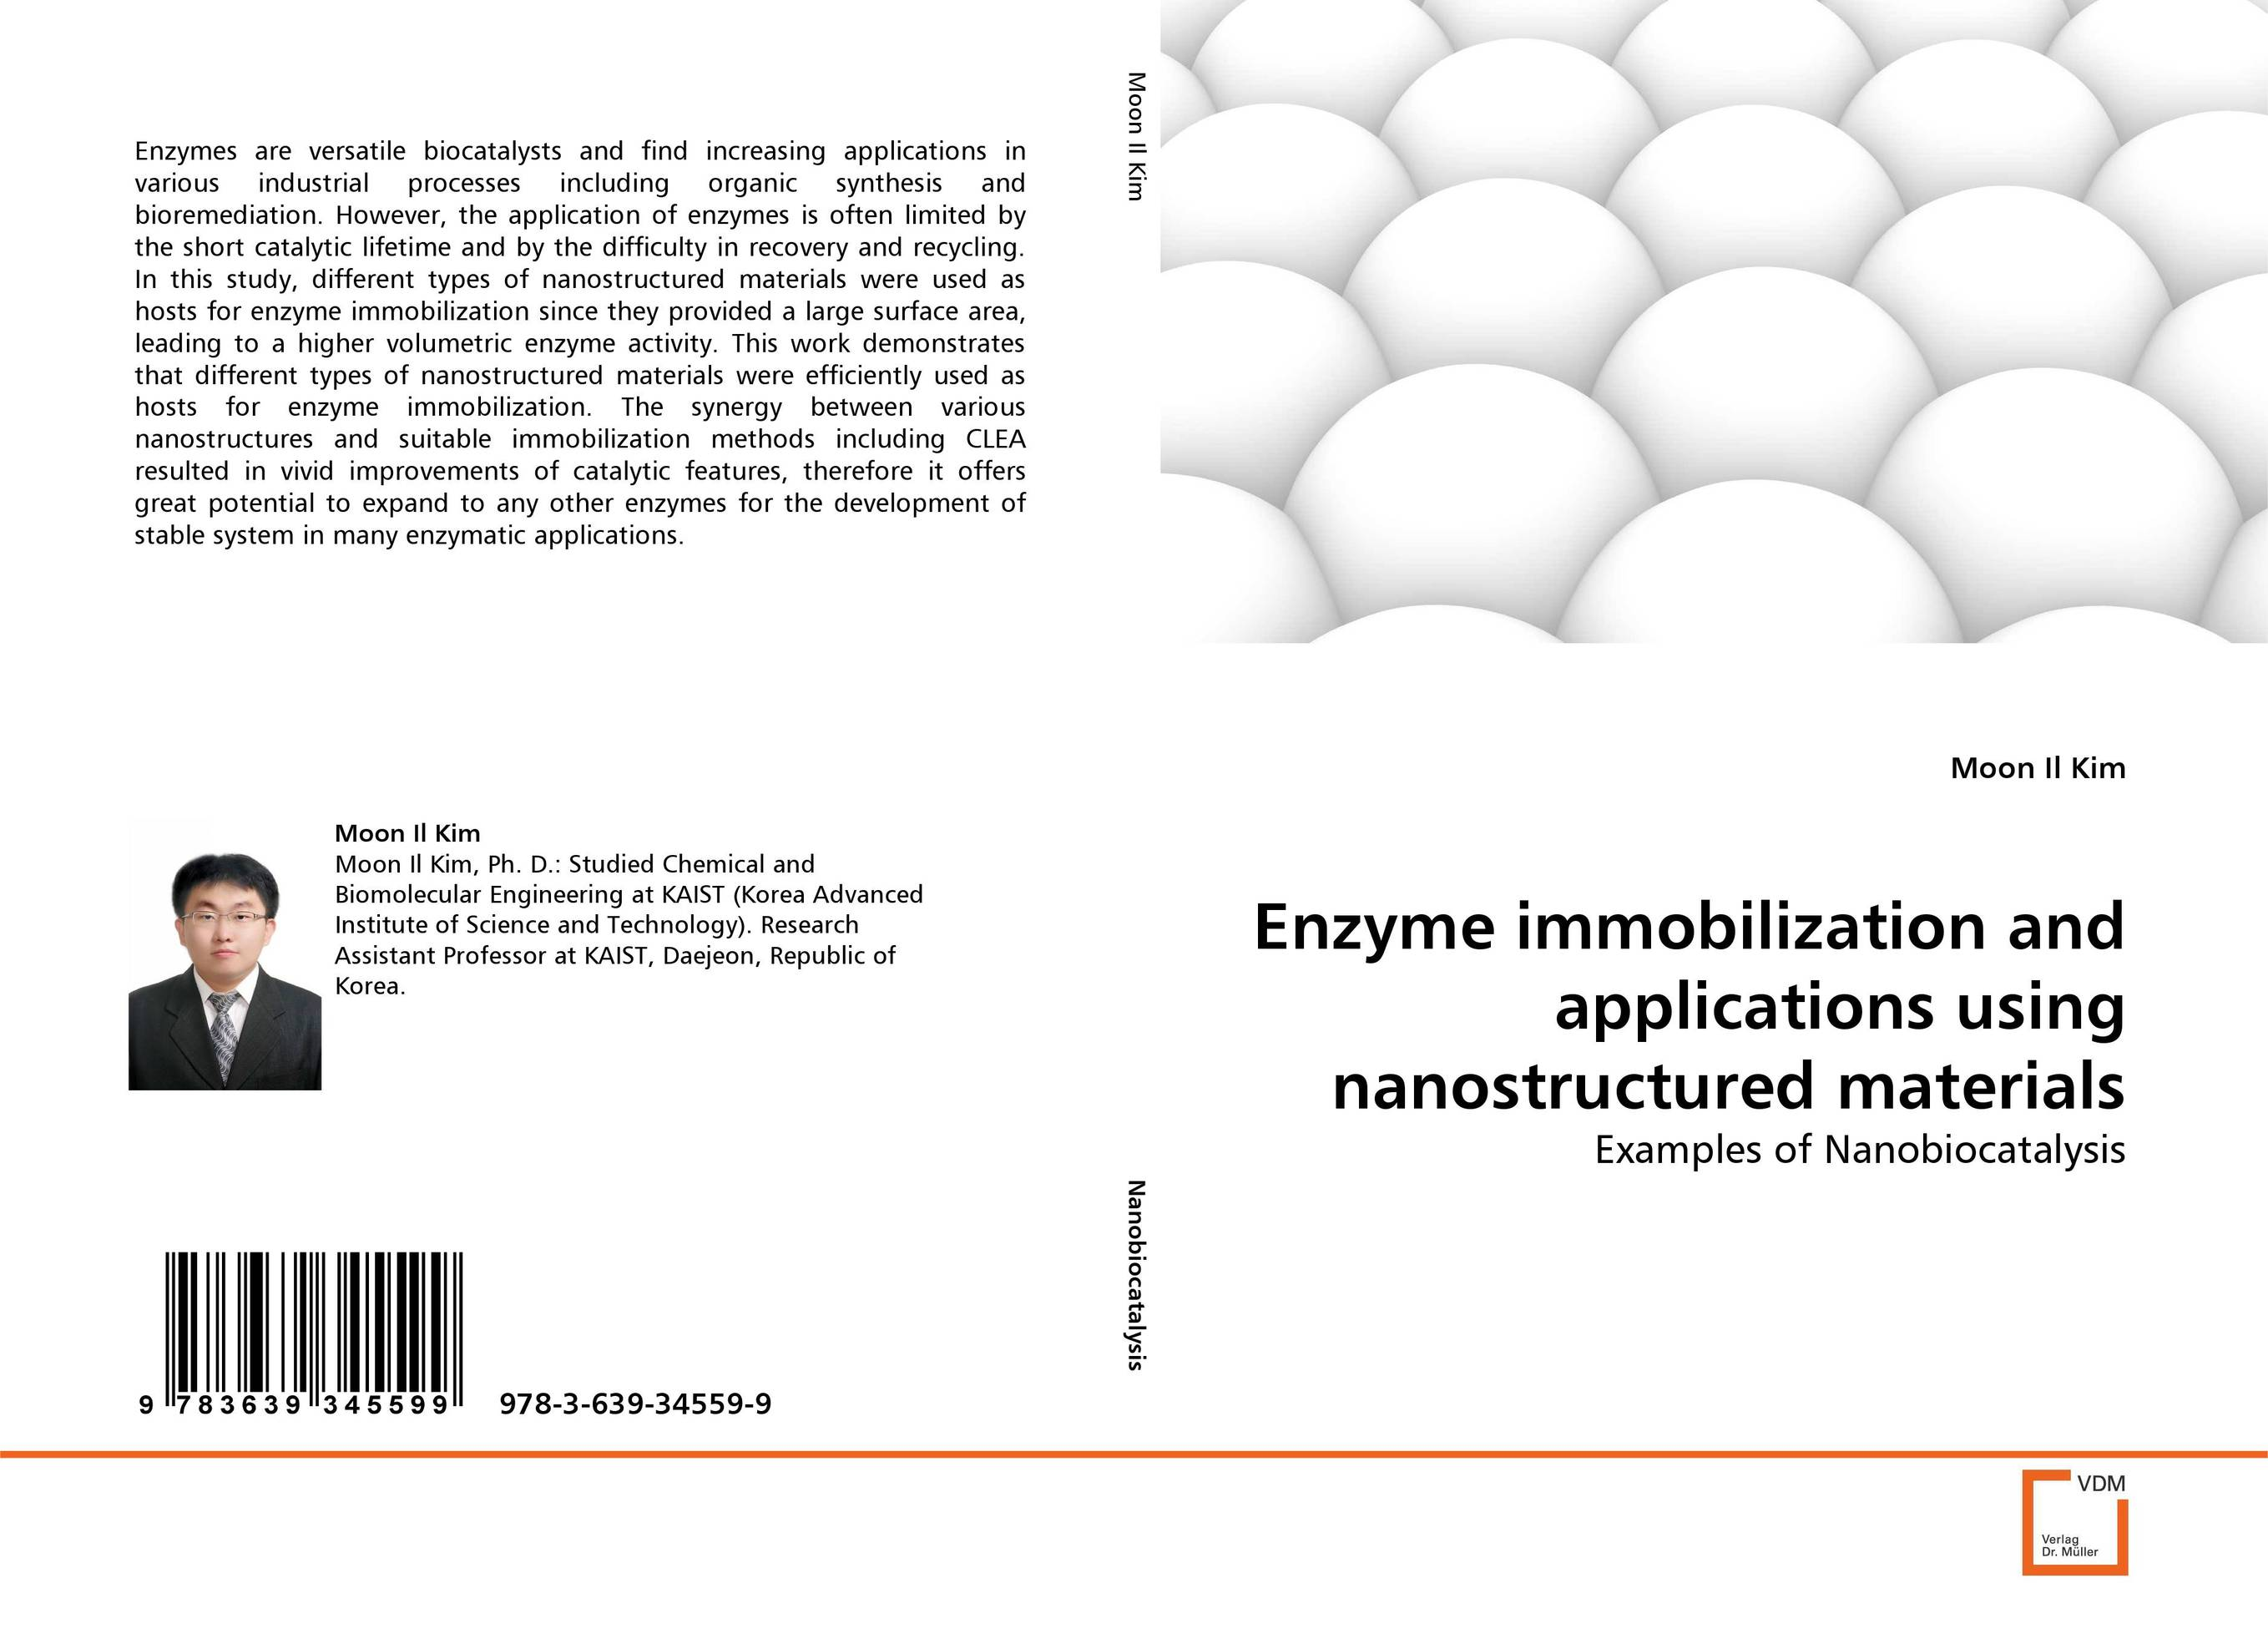 Enzyme immobilization and applications using nanostructured materials dennis hall g boronic acids preparation and applications in organic synthesis medicine and materials